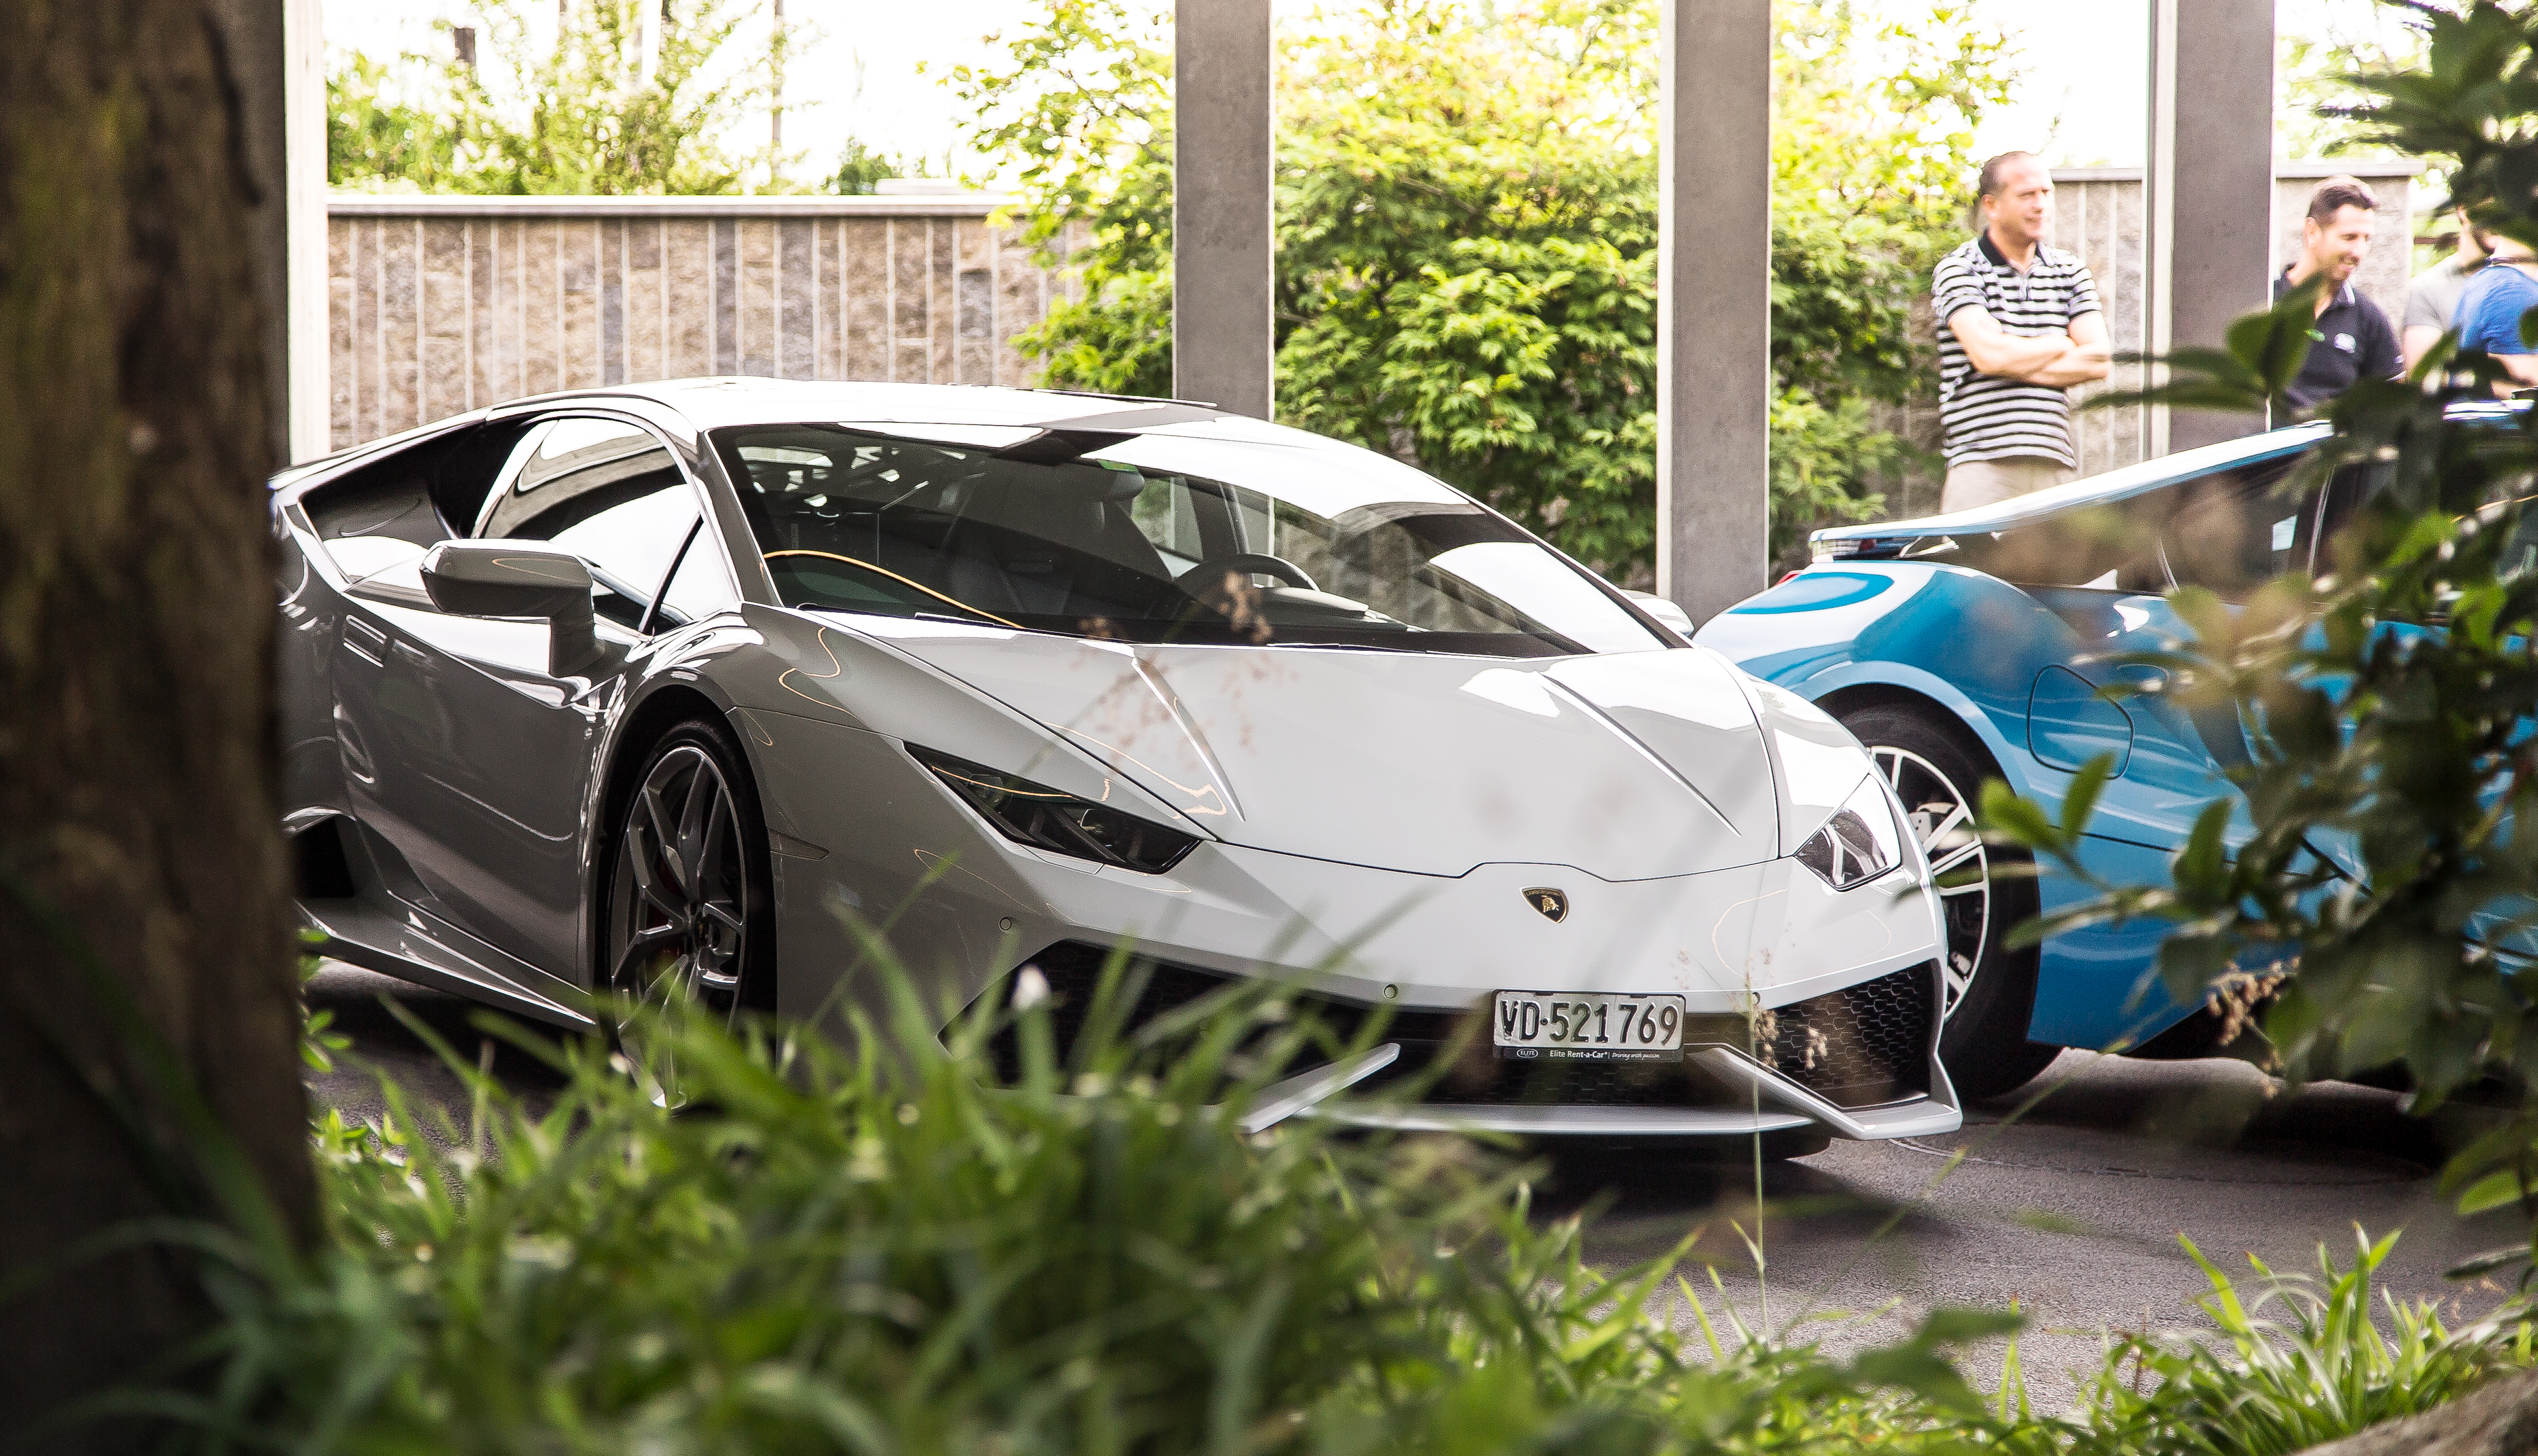 Supercar Experience Alps - car handovers at hotel